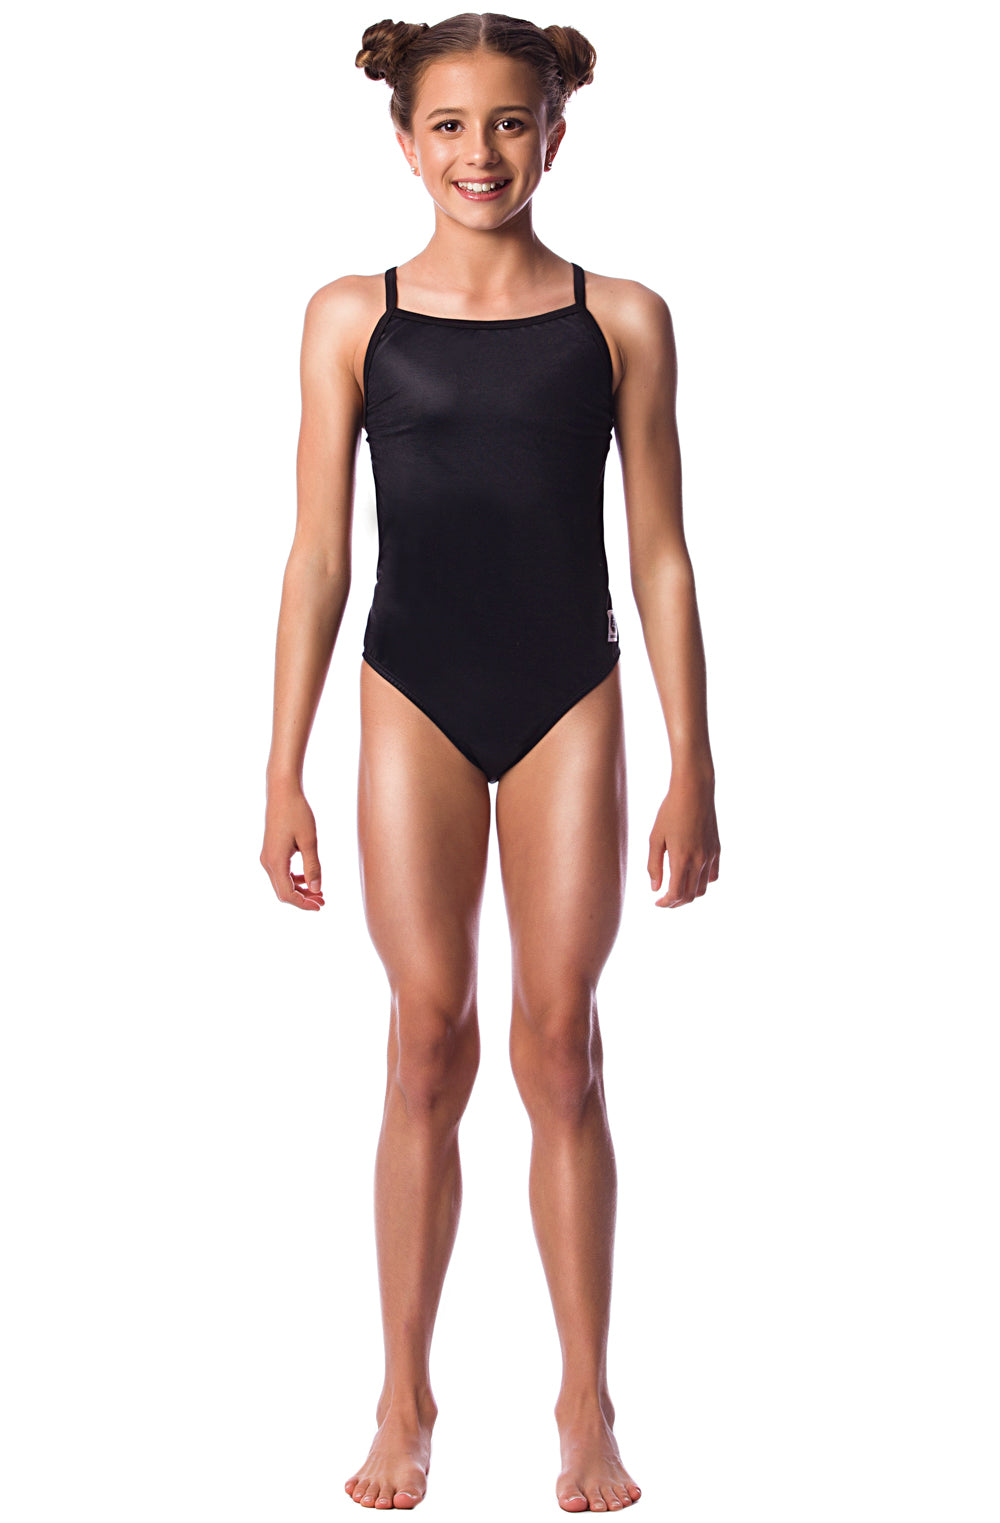 Pitch Black Girls Thin Strap - Shop Zealous Training Swimwear